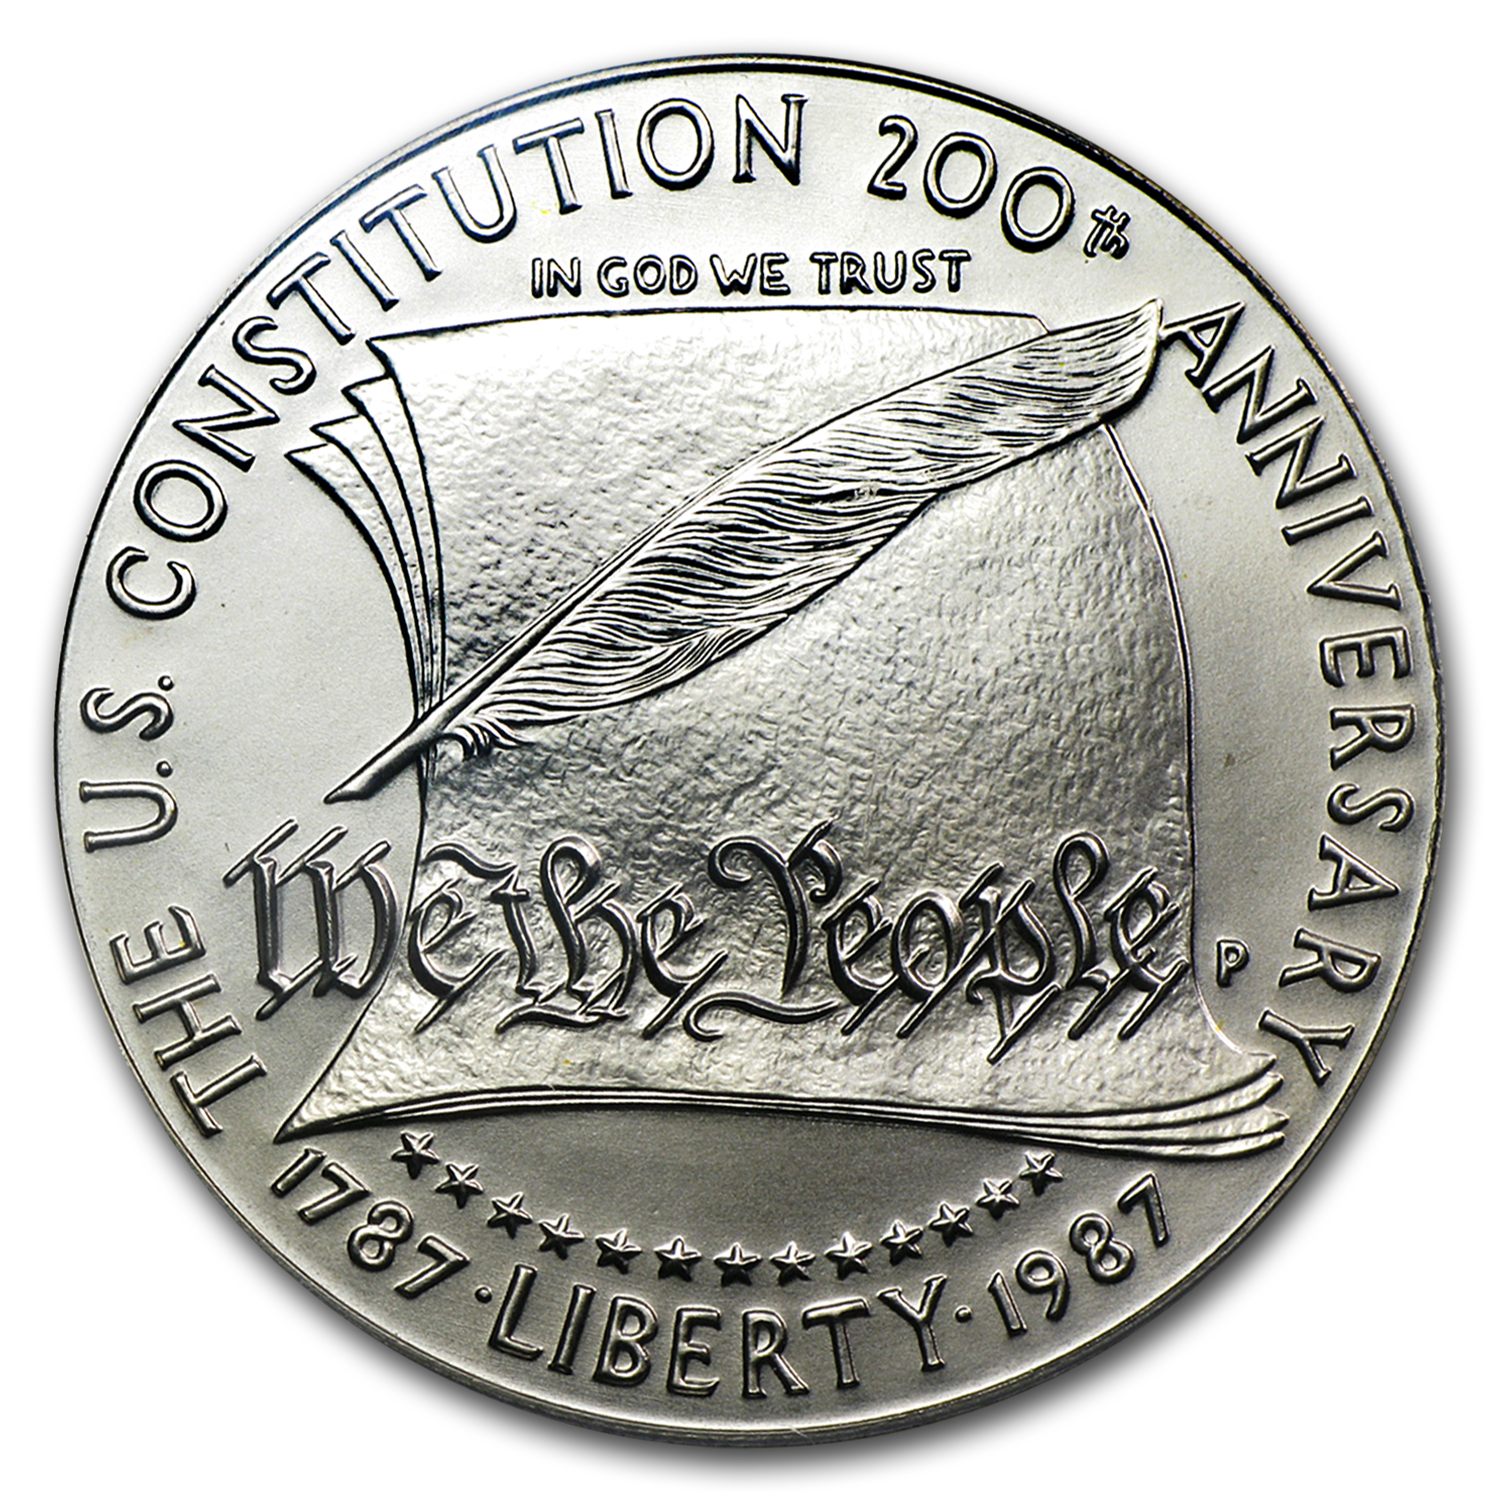 1987-P Constitution $1 Silver Commemorative MS-69 PCGS